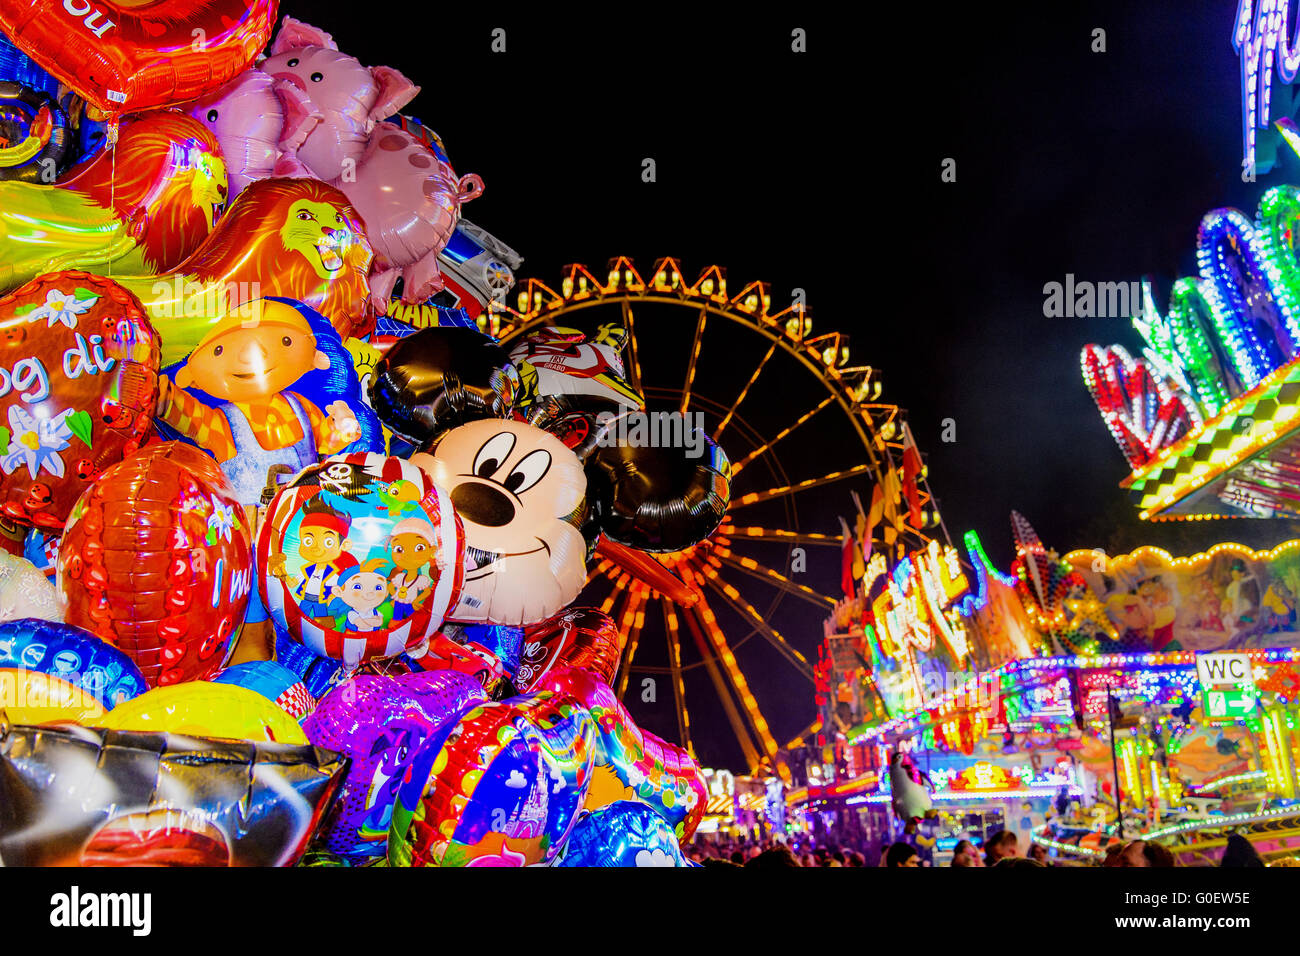 at the wiesn, Ferris wheel by night - Stock Image